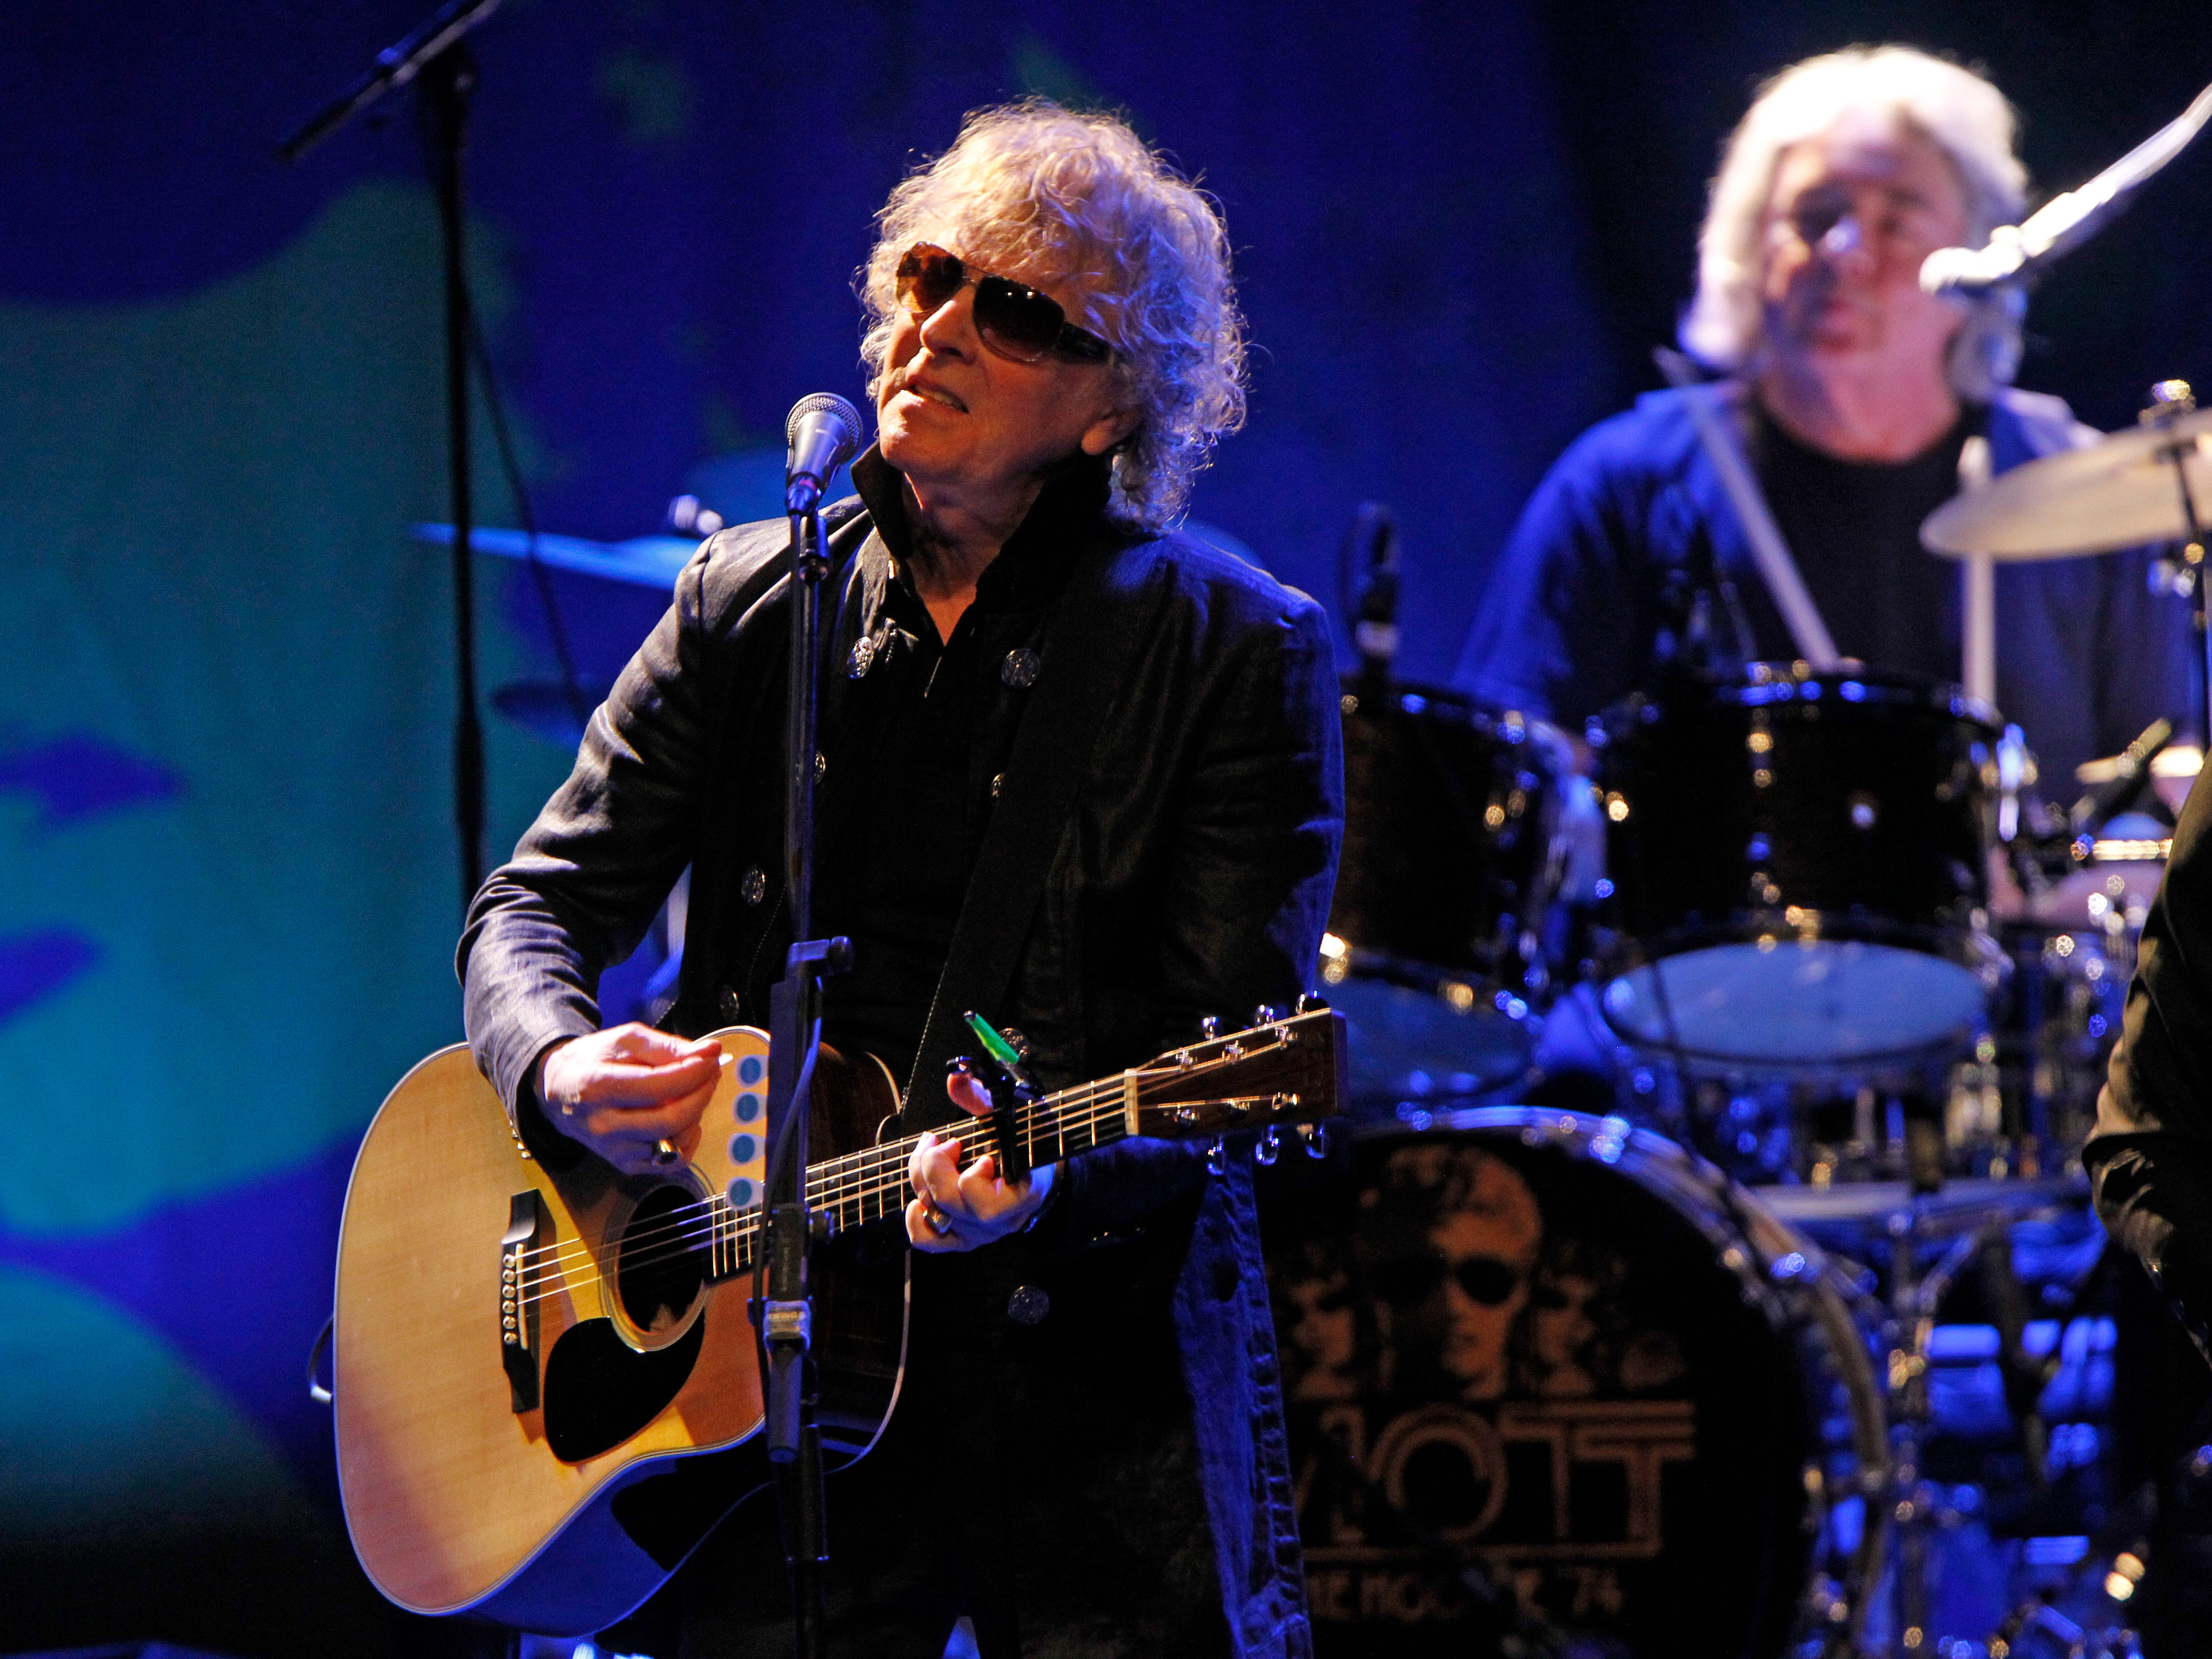 Ian Hunter, from the Mott The Hoople performs for the group's kick off tour  in U.S. at the Miller High Life Theatre in Milwaukee.